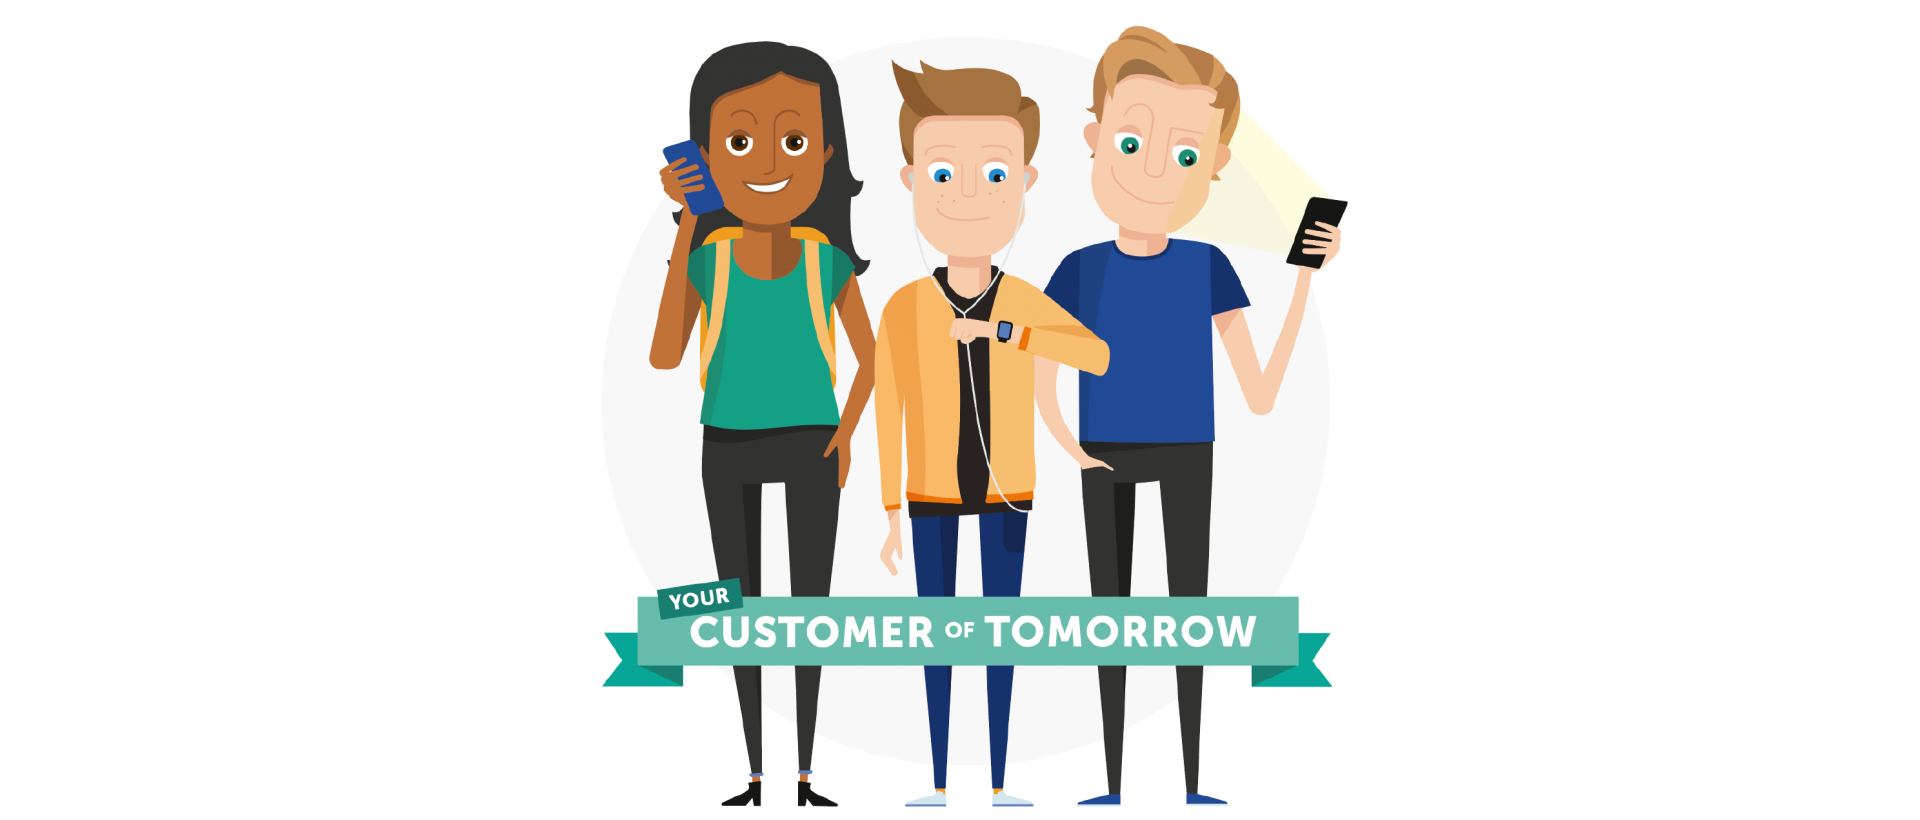 [Infographics] Generation Z: Your Customer of Tomorrow